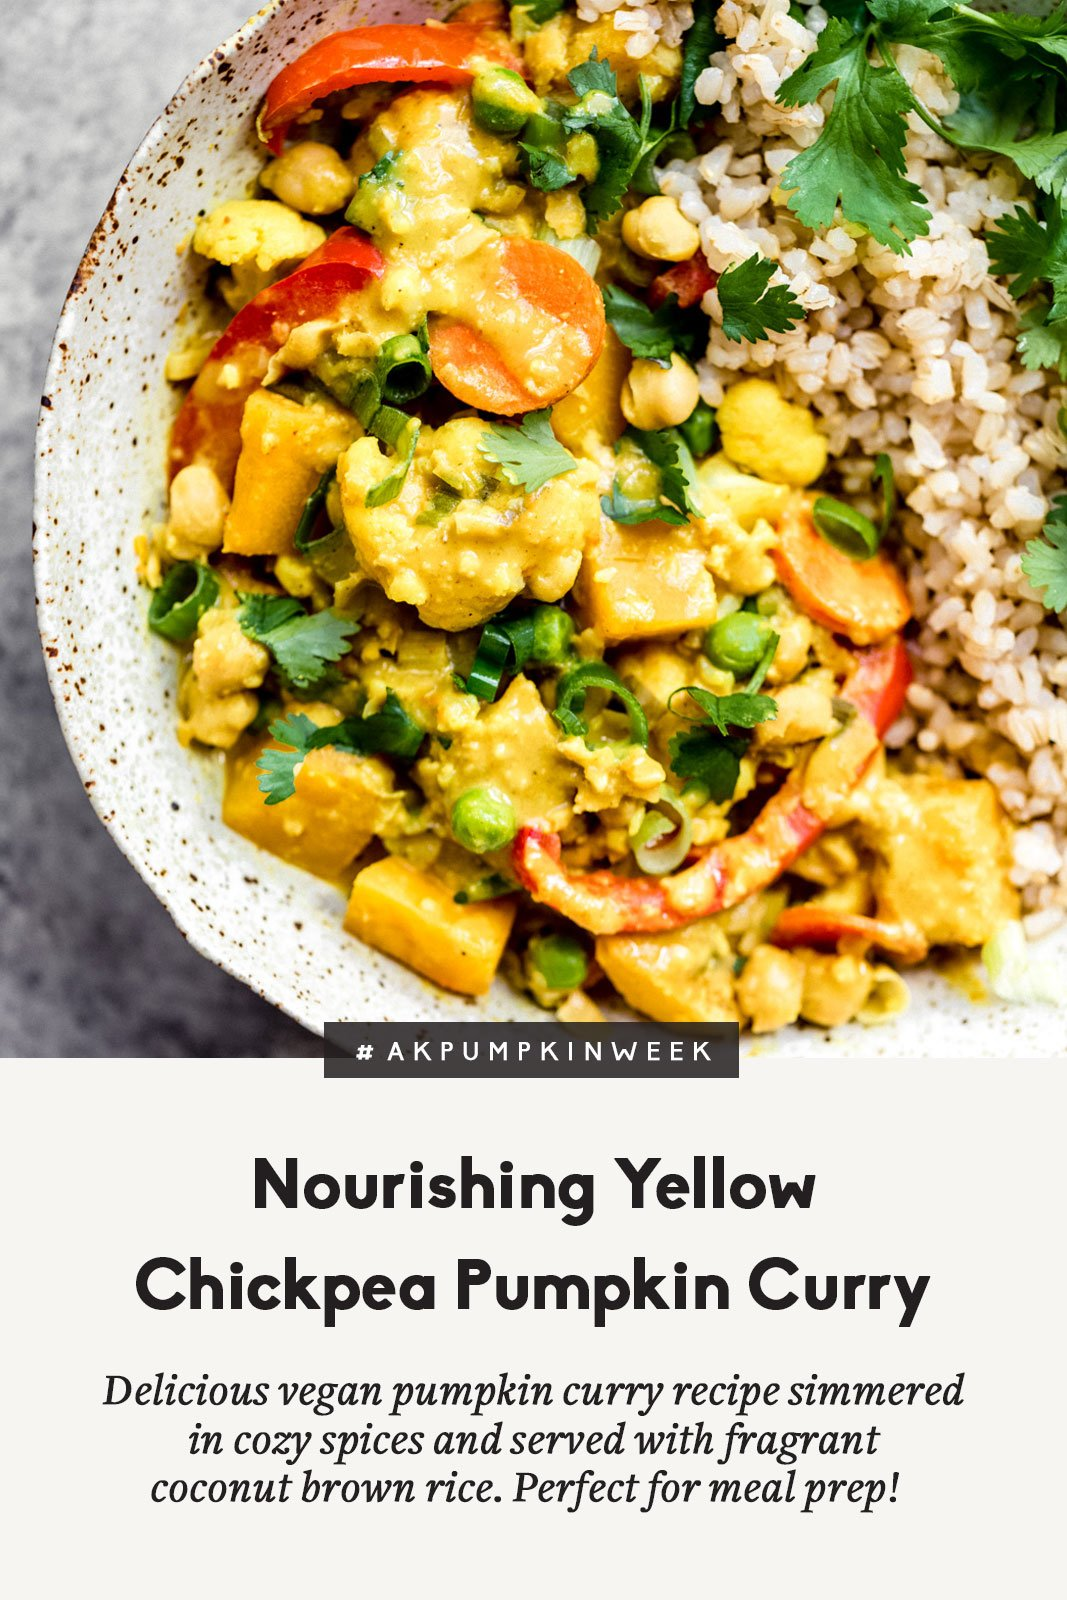 pumpkin curry with rice in a bowl with text overlay